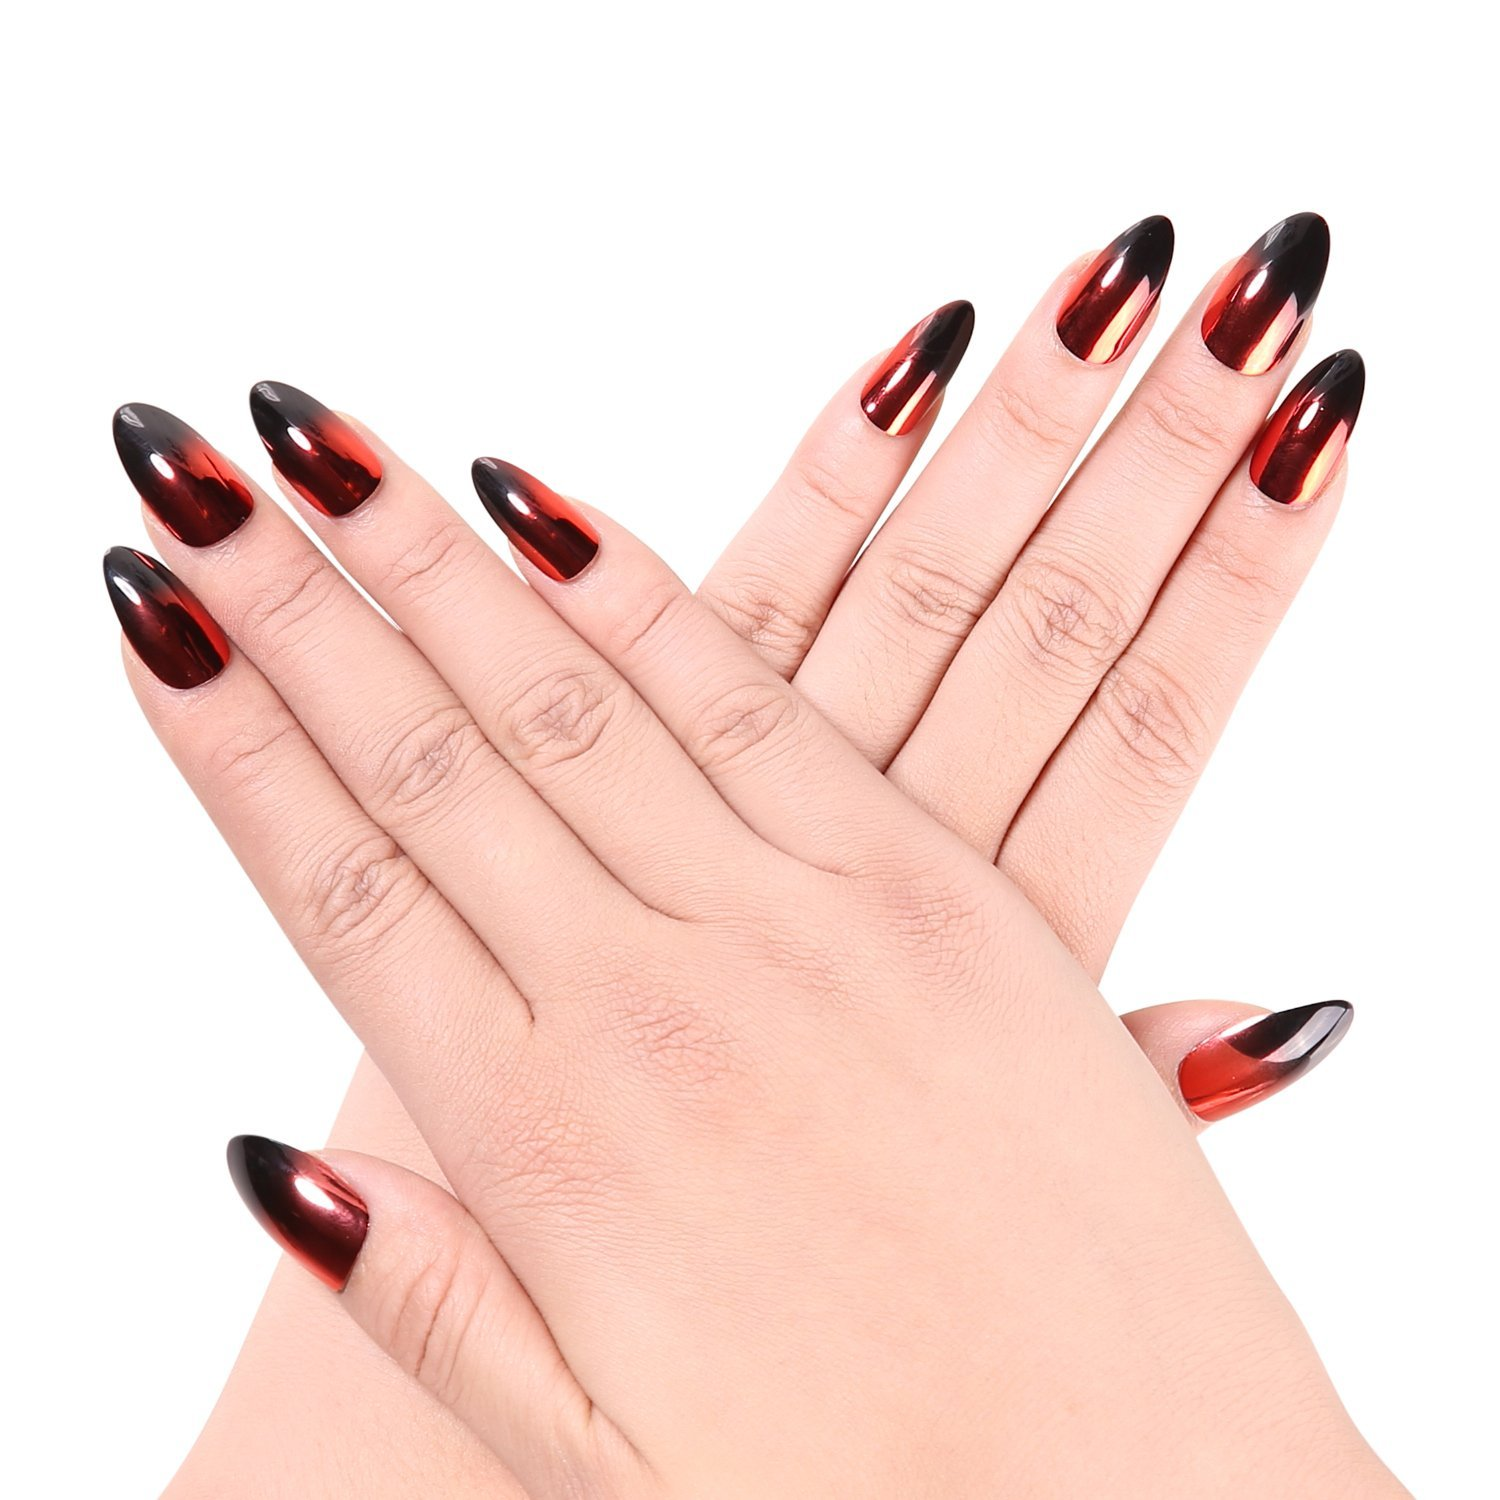 Ejiubas 24 Pcs Metalic Red and Black Color Changing Full Cover Medium Talone False Nail Tips